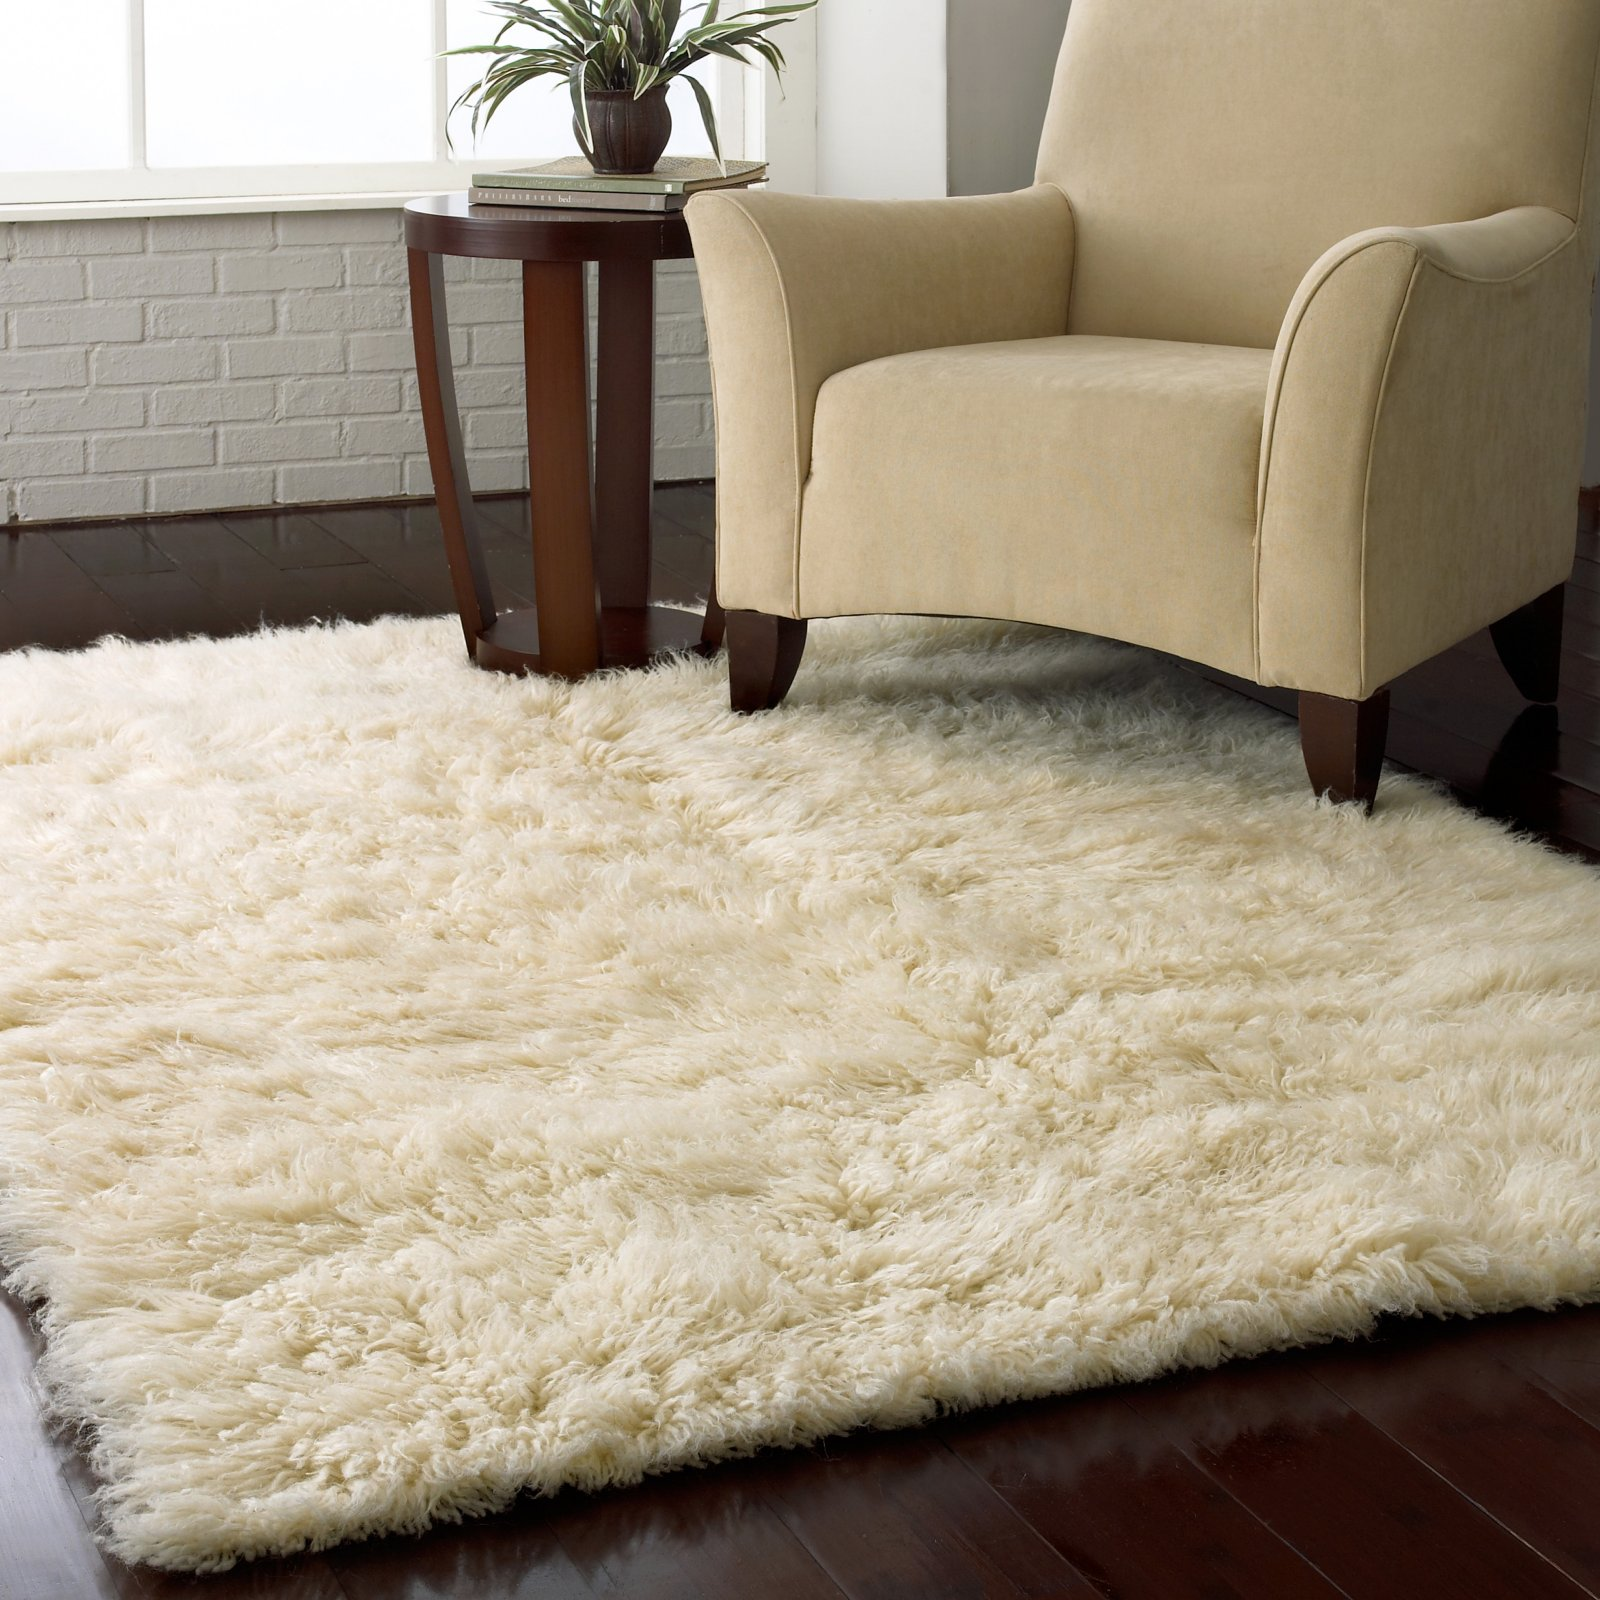 Popular Flokati Shag Rug - Natural plush area rugs for living room